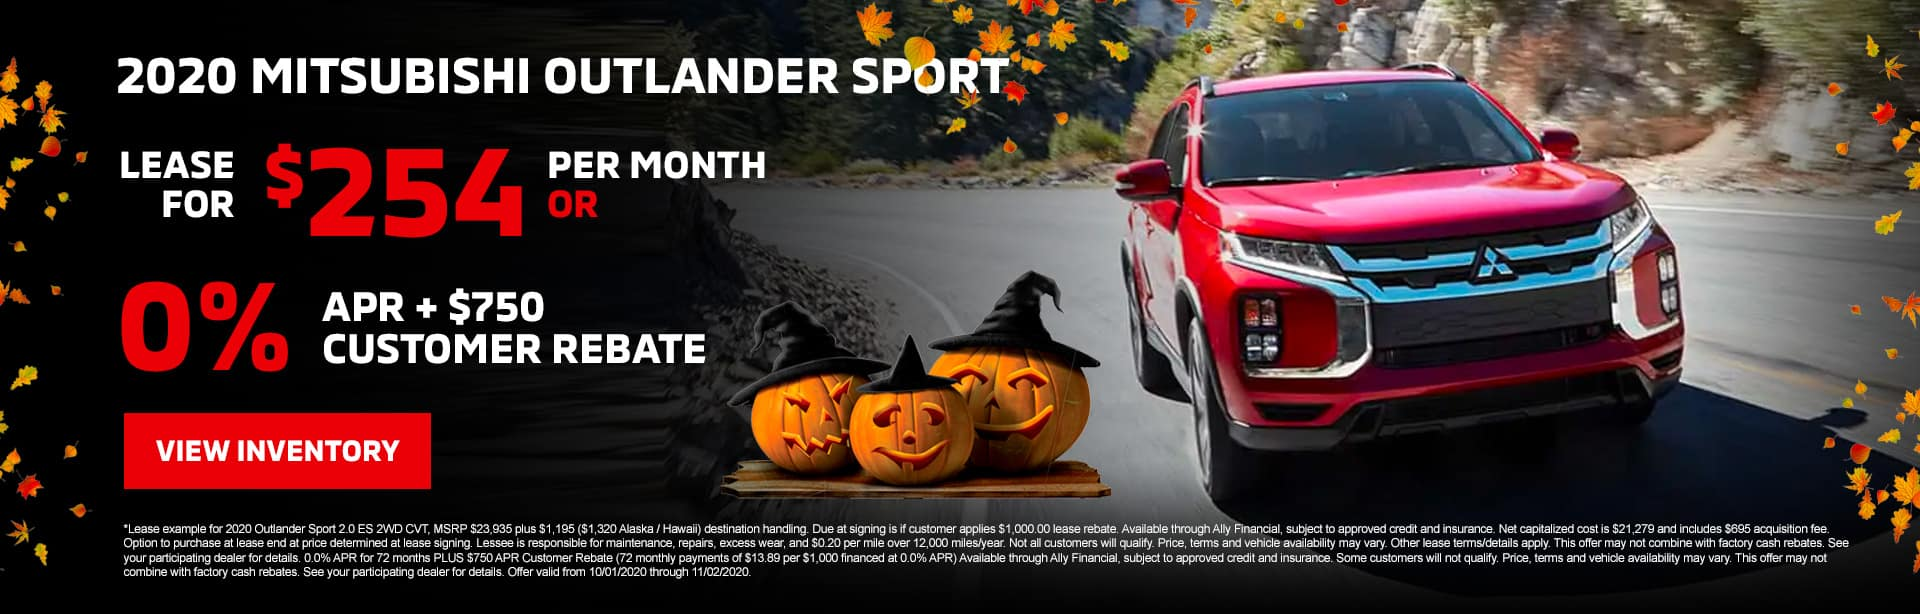 2020 Mitsubishi Outlander Sport Lease for $254/mo with $2,528 due at signing OR 0.0% APR + $750 Customer Rebate